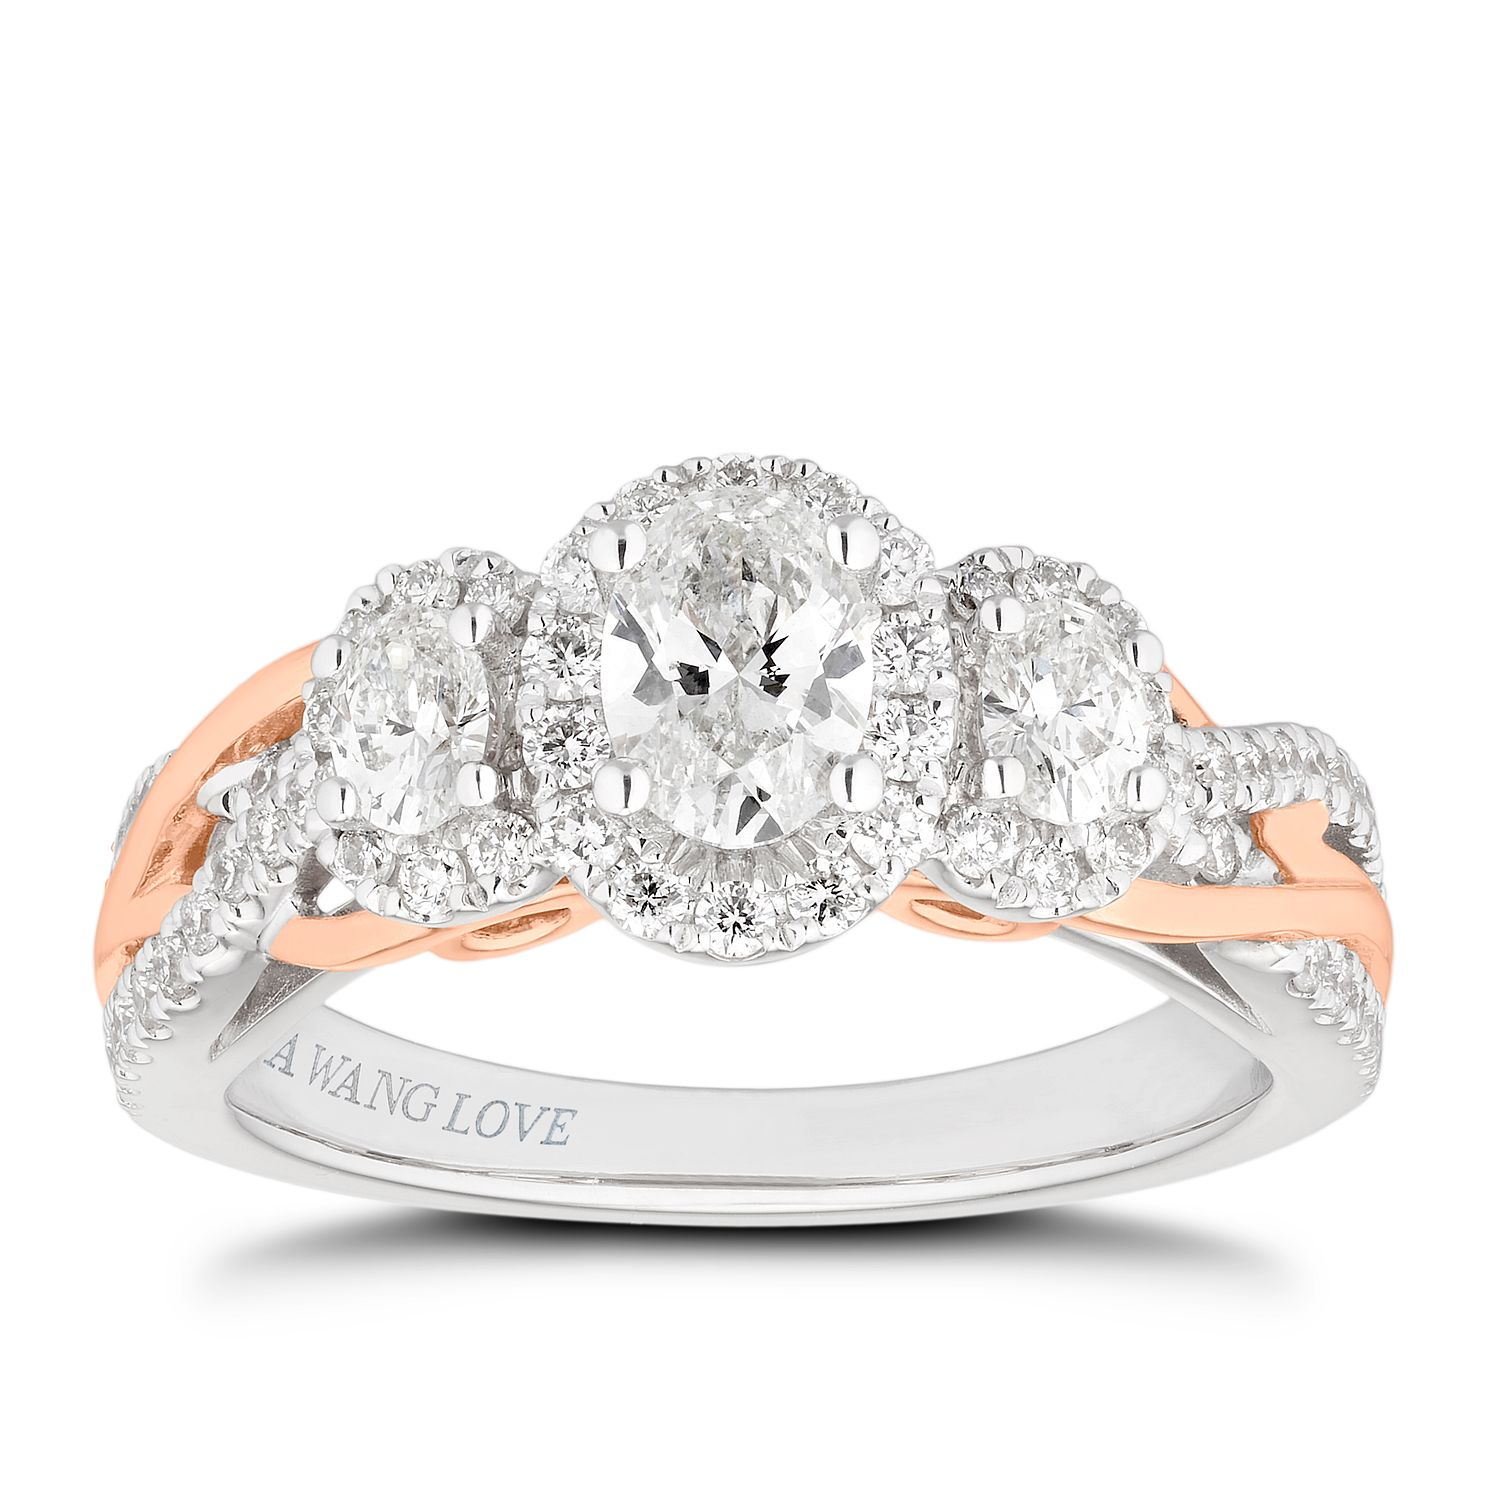 Vera Wang 18ct White & Rose Gold 0.95ct 3 Diamond Halo Ring - Product number 4040589